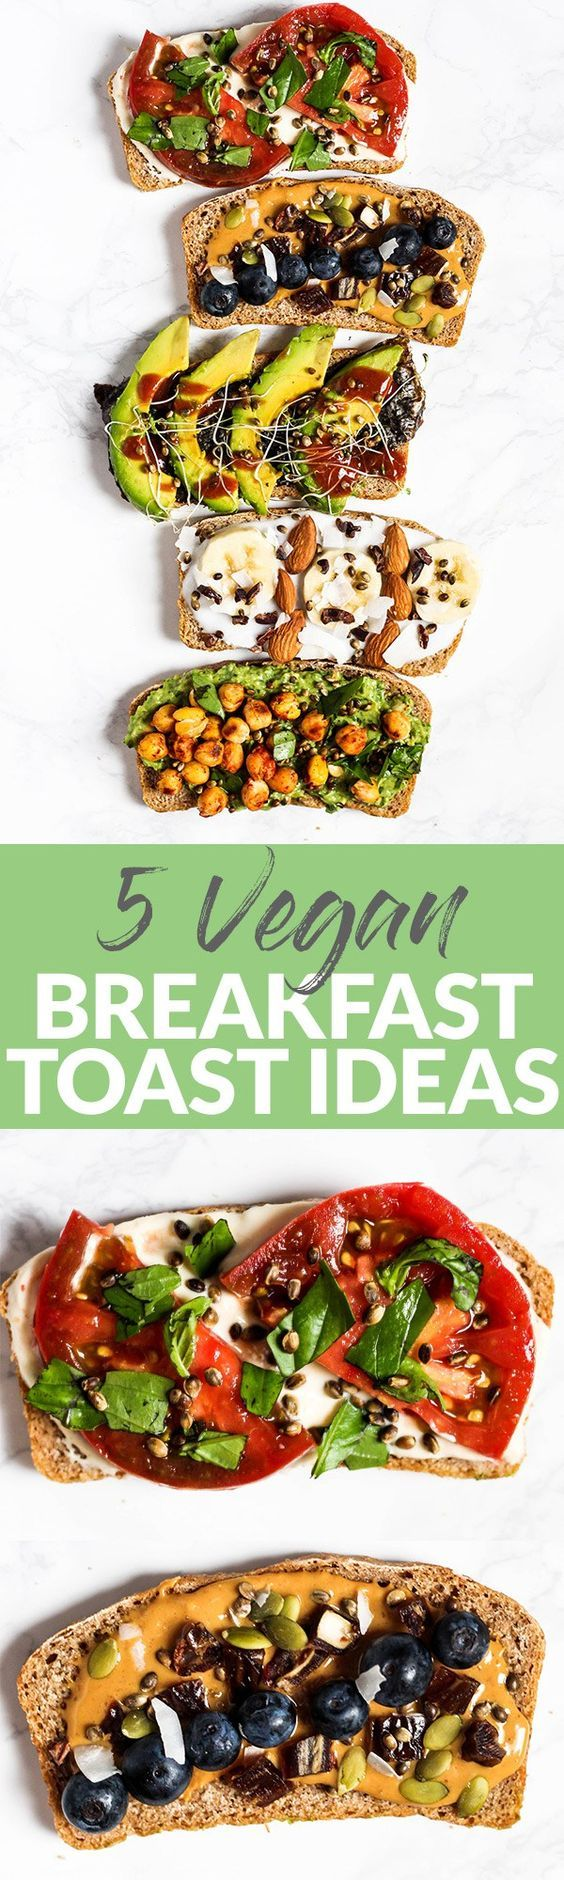 Amp up your plain piece of toast with these 5 Vegan Breakfast Toast Ideas! With both sweet & savory options, there's a toast creation perfect for any craving. (can be gluten-free) @ManitobaHarvest #ToastedonToast #ad